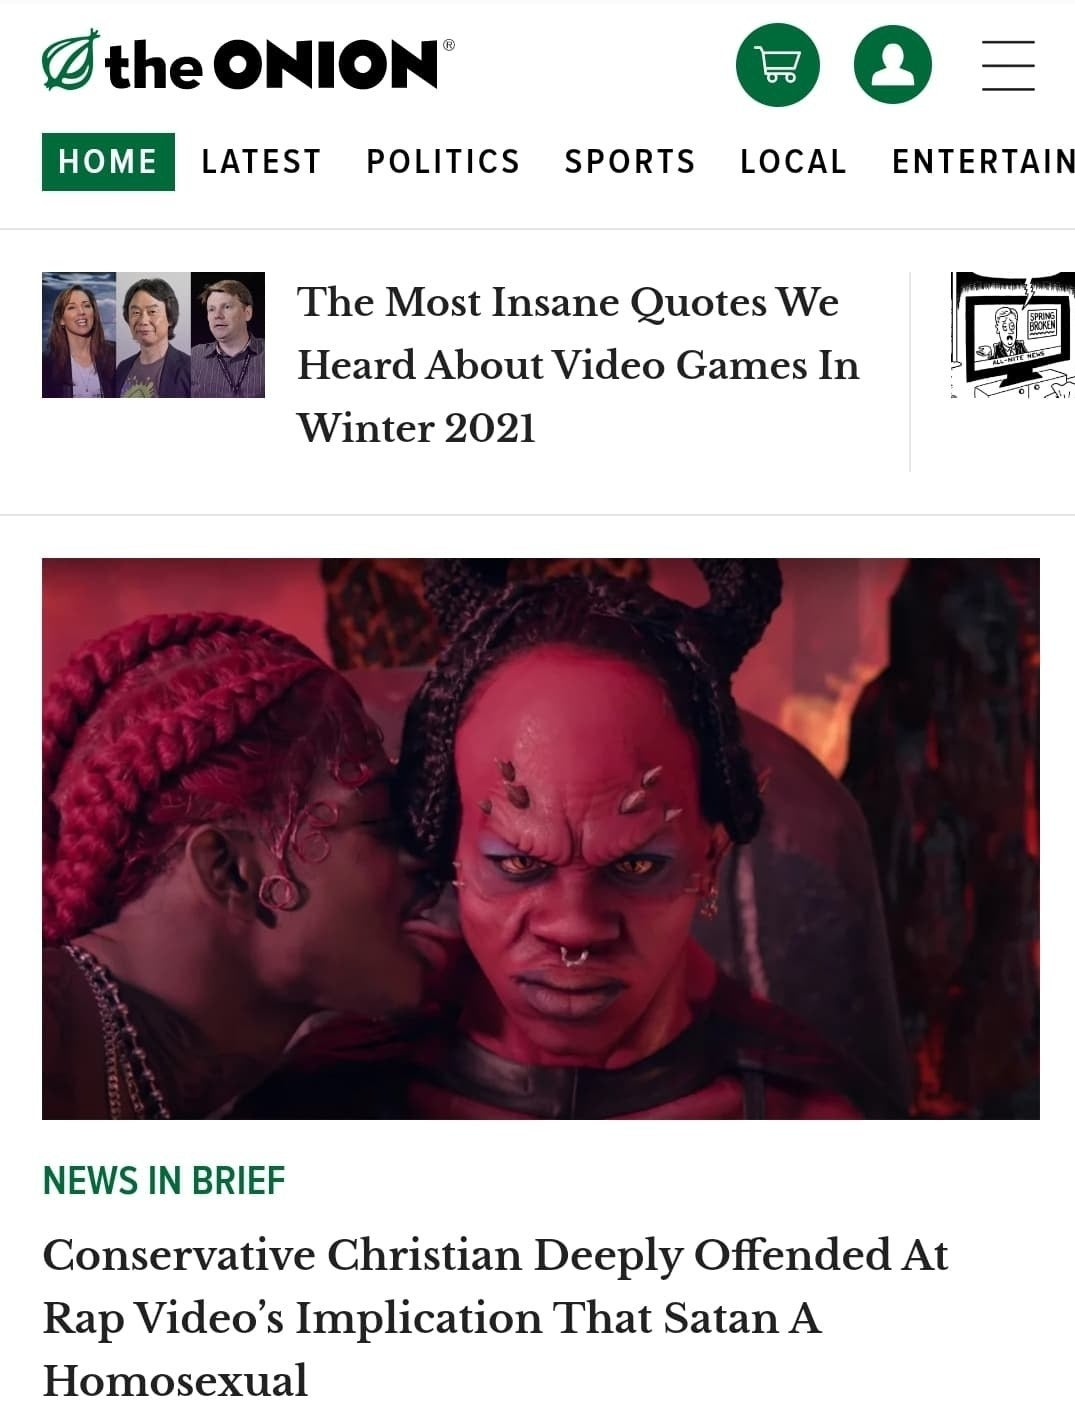 The homepage of the Onion